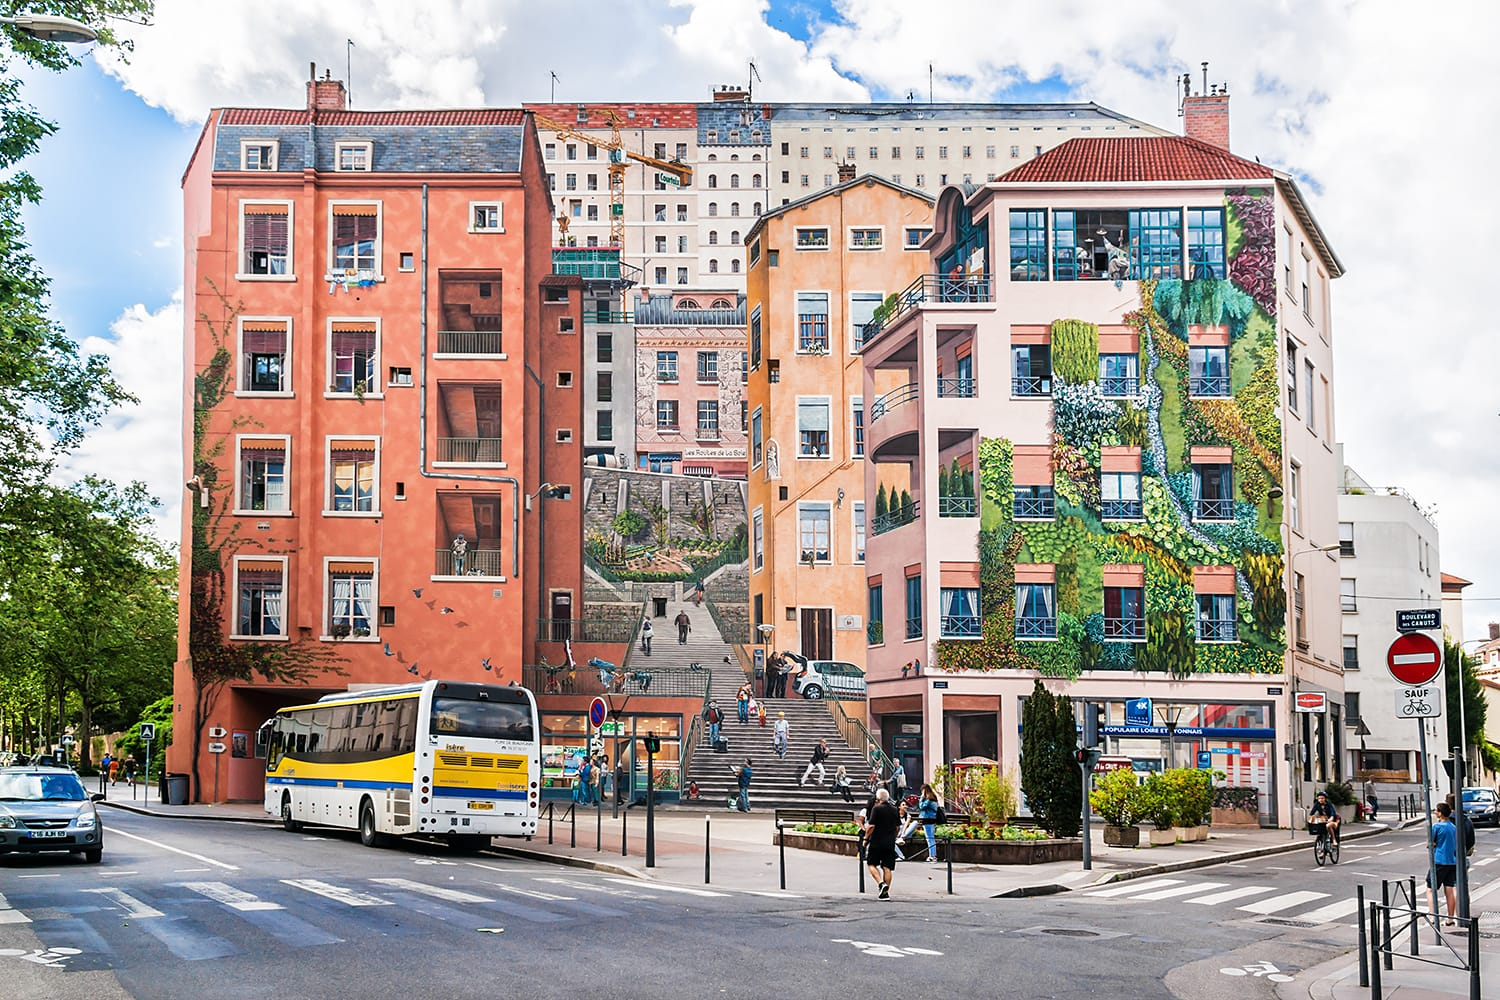 """Mur des Canuts"" (1987) in the Croix-Rousse district. The huge mural is a realistic painting of a Lyon scene, part of the ""Cite de Creation""."